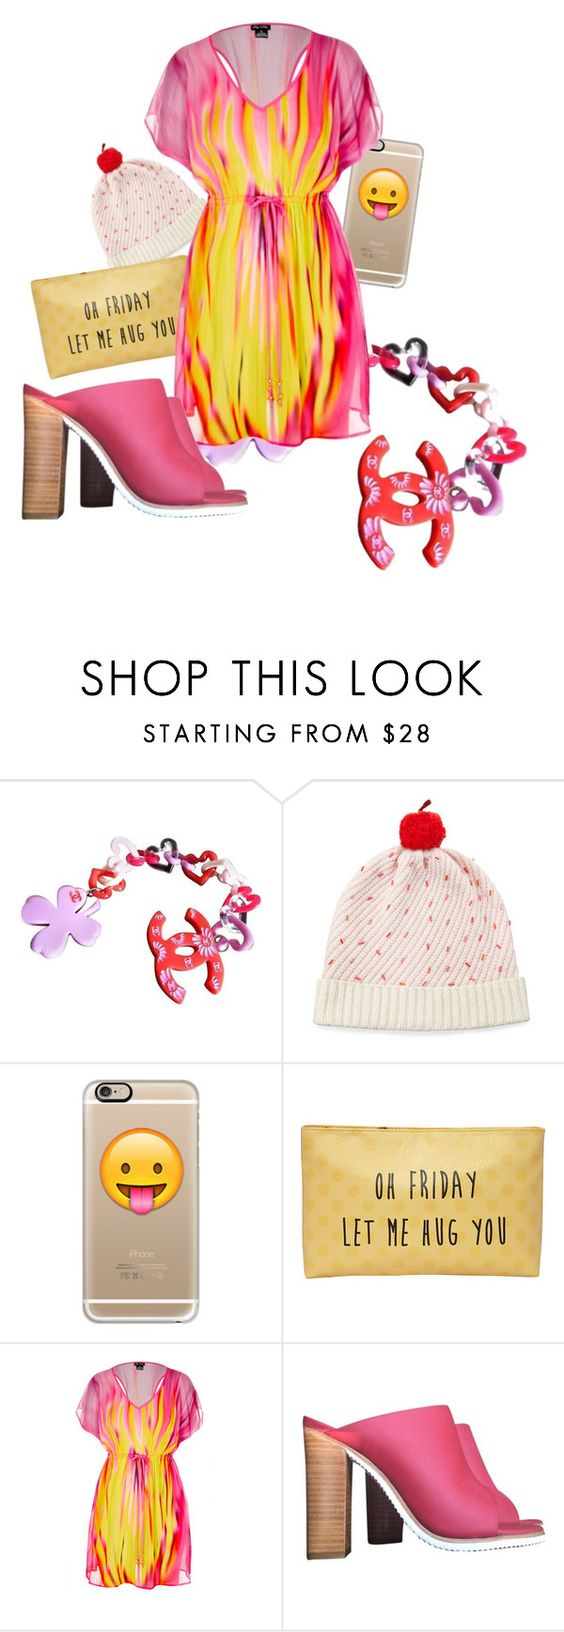 """[142] TGIF"" by ka-berger ❤ liked on Polyvore featuring Chanel, Kate Spade, Casetify, T-shirt & Jeans, City Chic, TIBI and weekend"